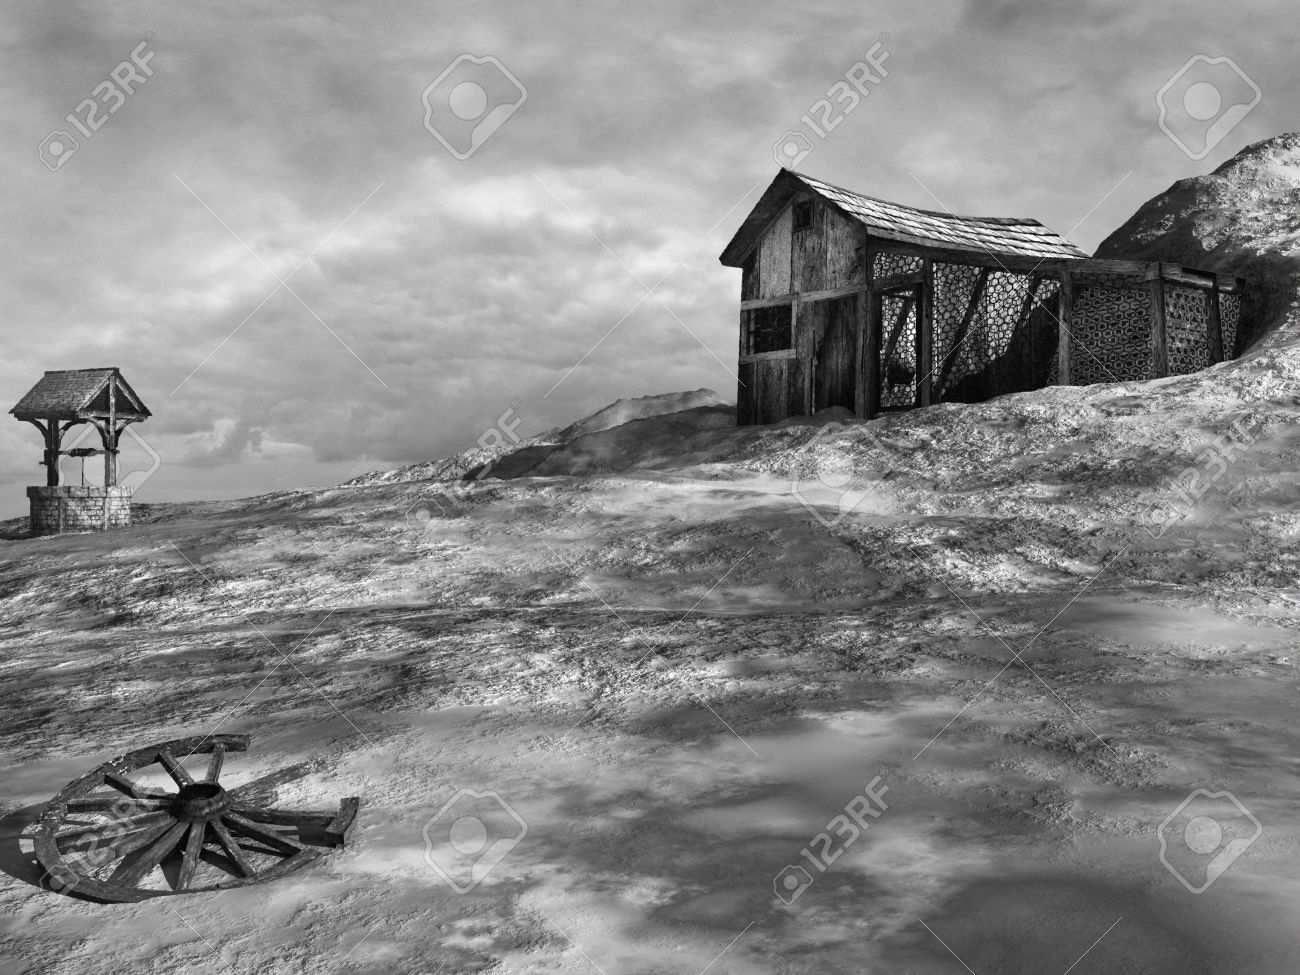 Black and white scenery with an old shack and a well stock photo 60928173